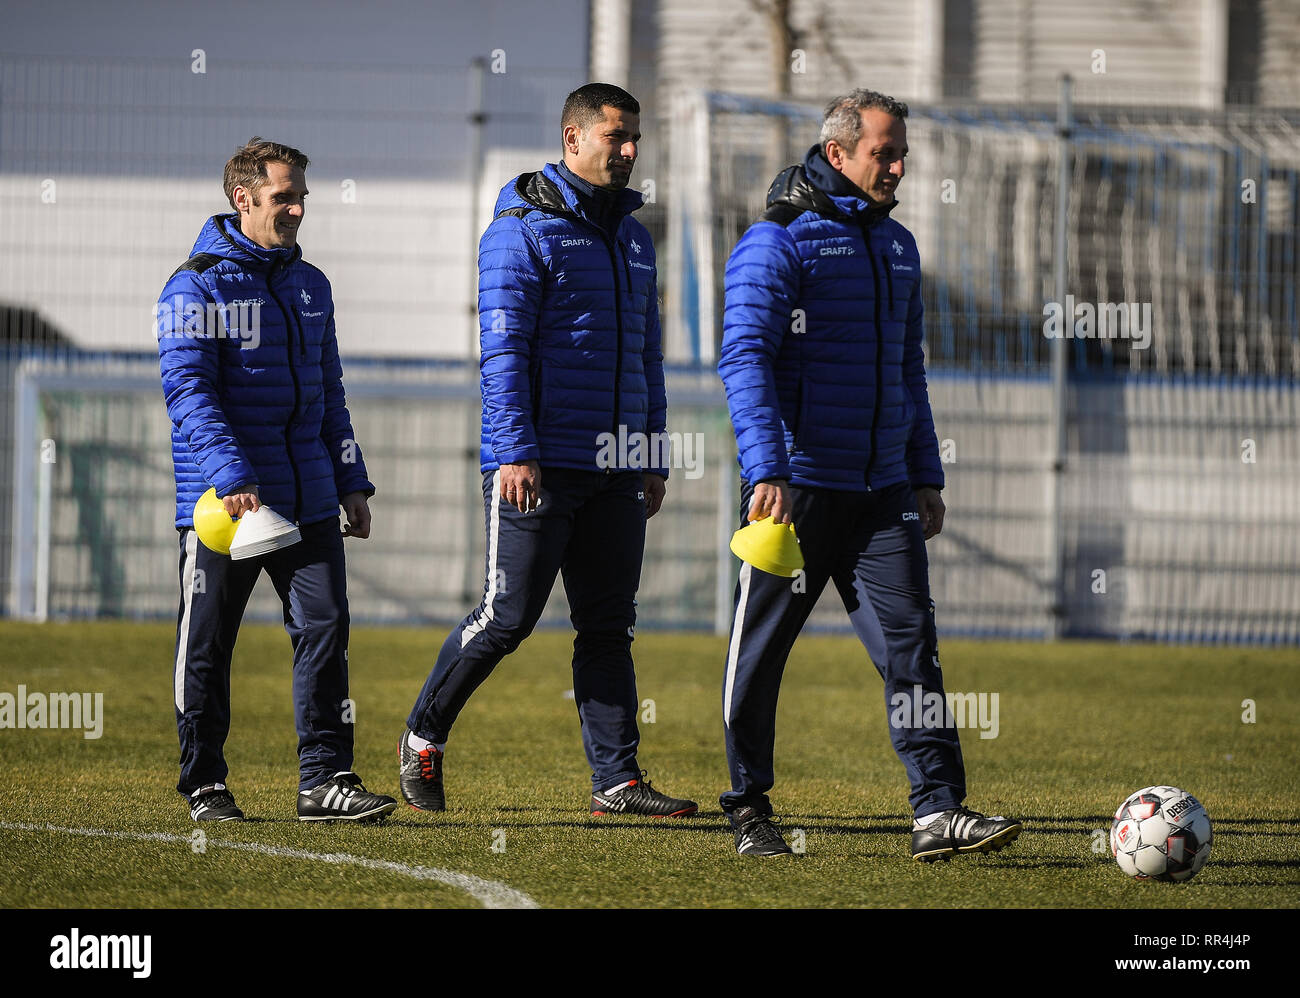 Darmstadt, Germany. 24th Feb, 2019. The new lily trainer team with Sven Thur (l-r), assistant trainer, Dimitrios Grammozis, head coach, and Iraklis Metaxas, assistant trainer, cross the field. Darmstadt 98 officially introduces its new head coach. Credit: Andreas Arnold/dpa/Alamy Live News - Stock Image